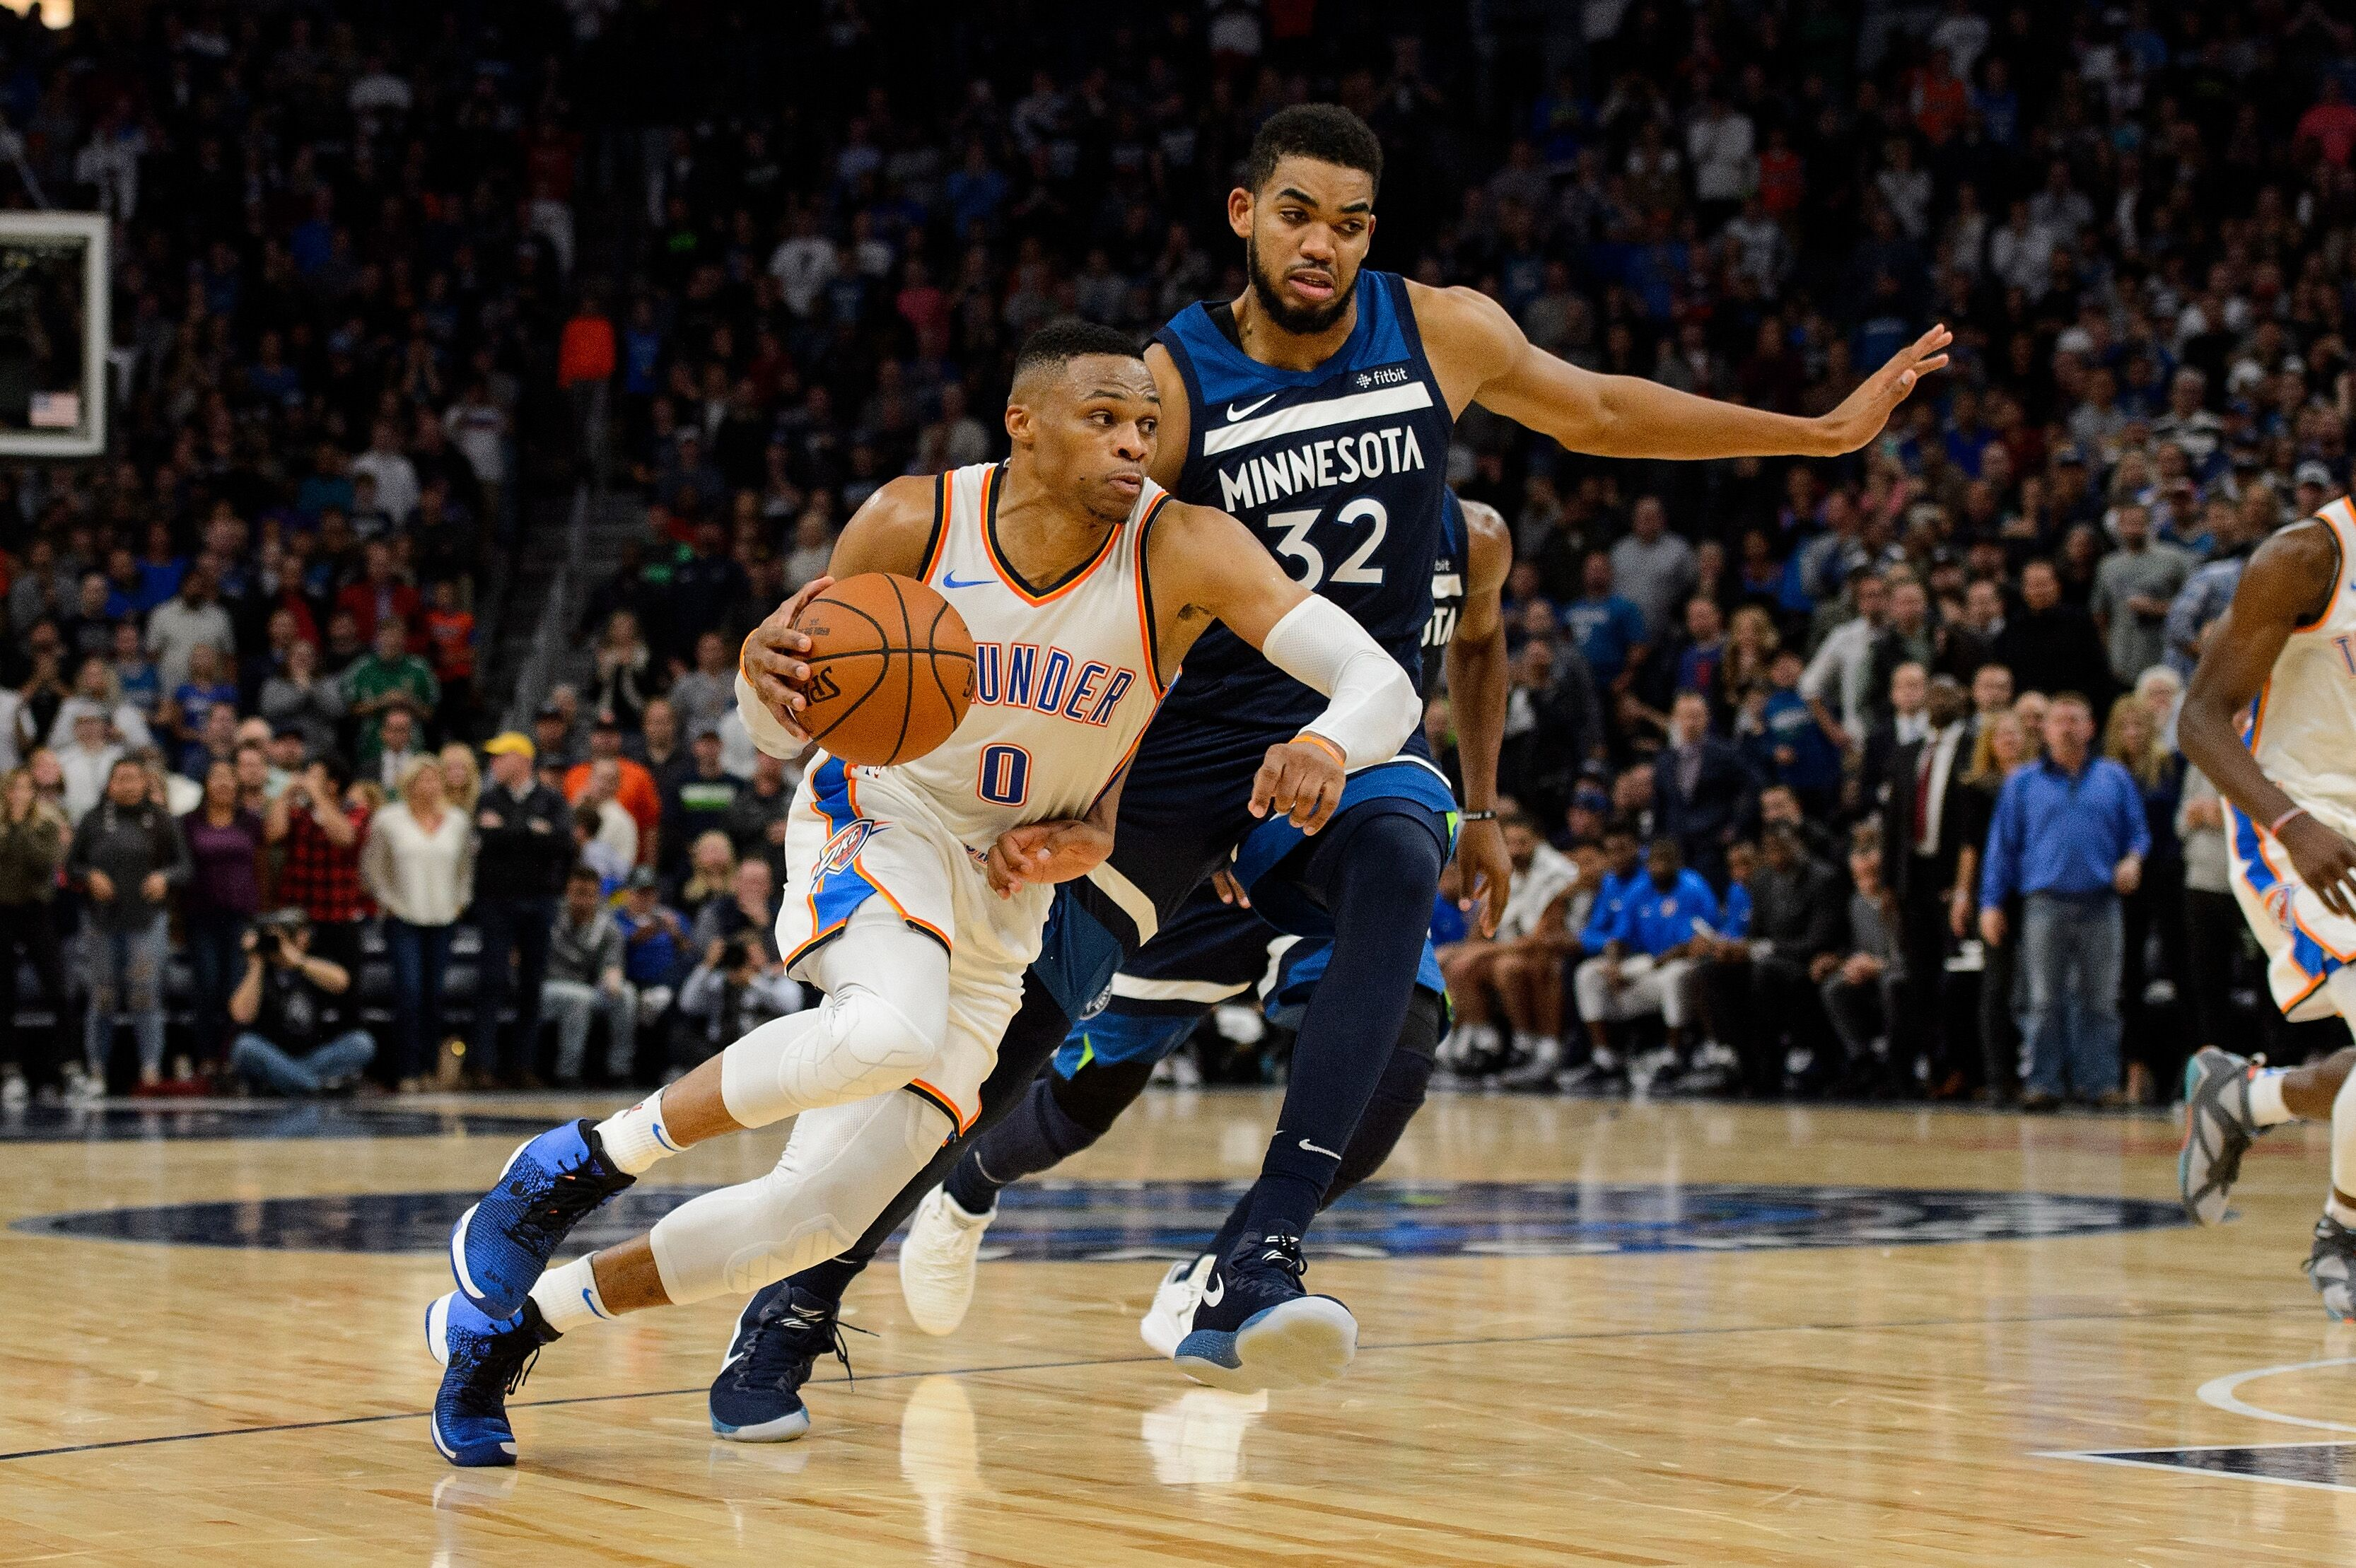 Preview: OKC Thunder visit Minnesota looking to end current skid